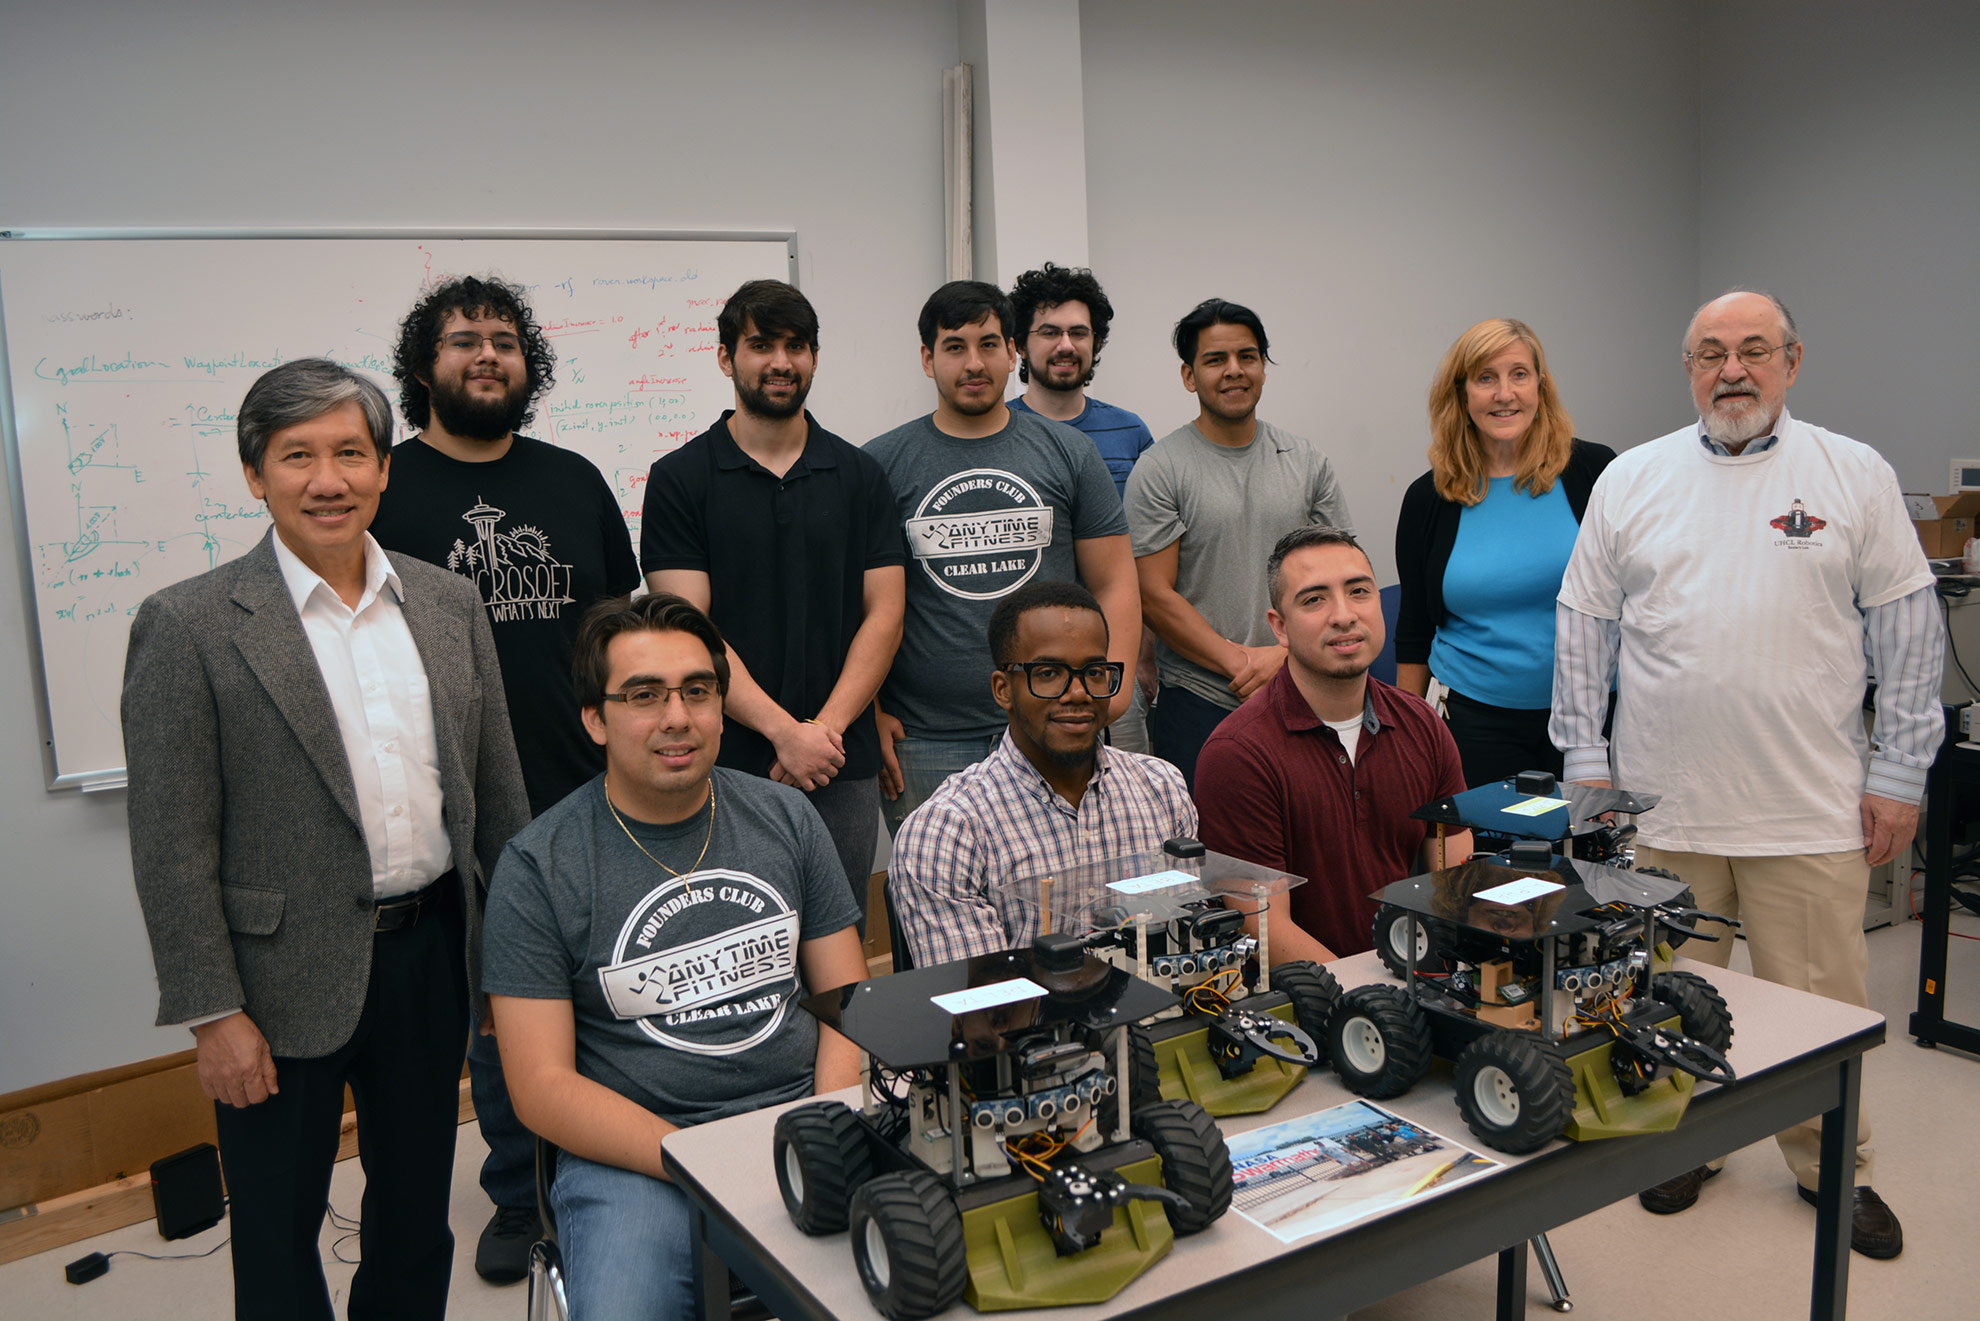 UHCL Swarmathon team pushing robotics to new frontiers